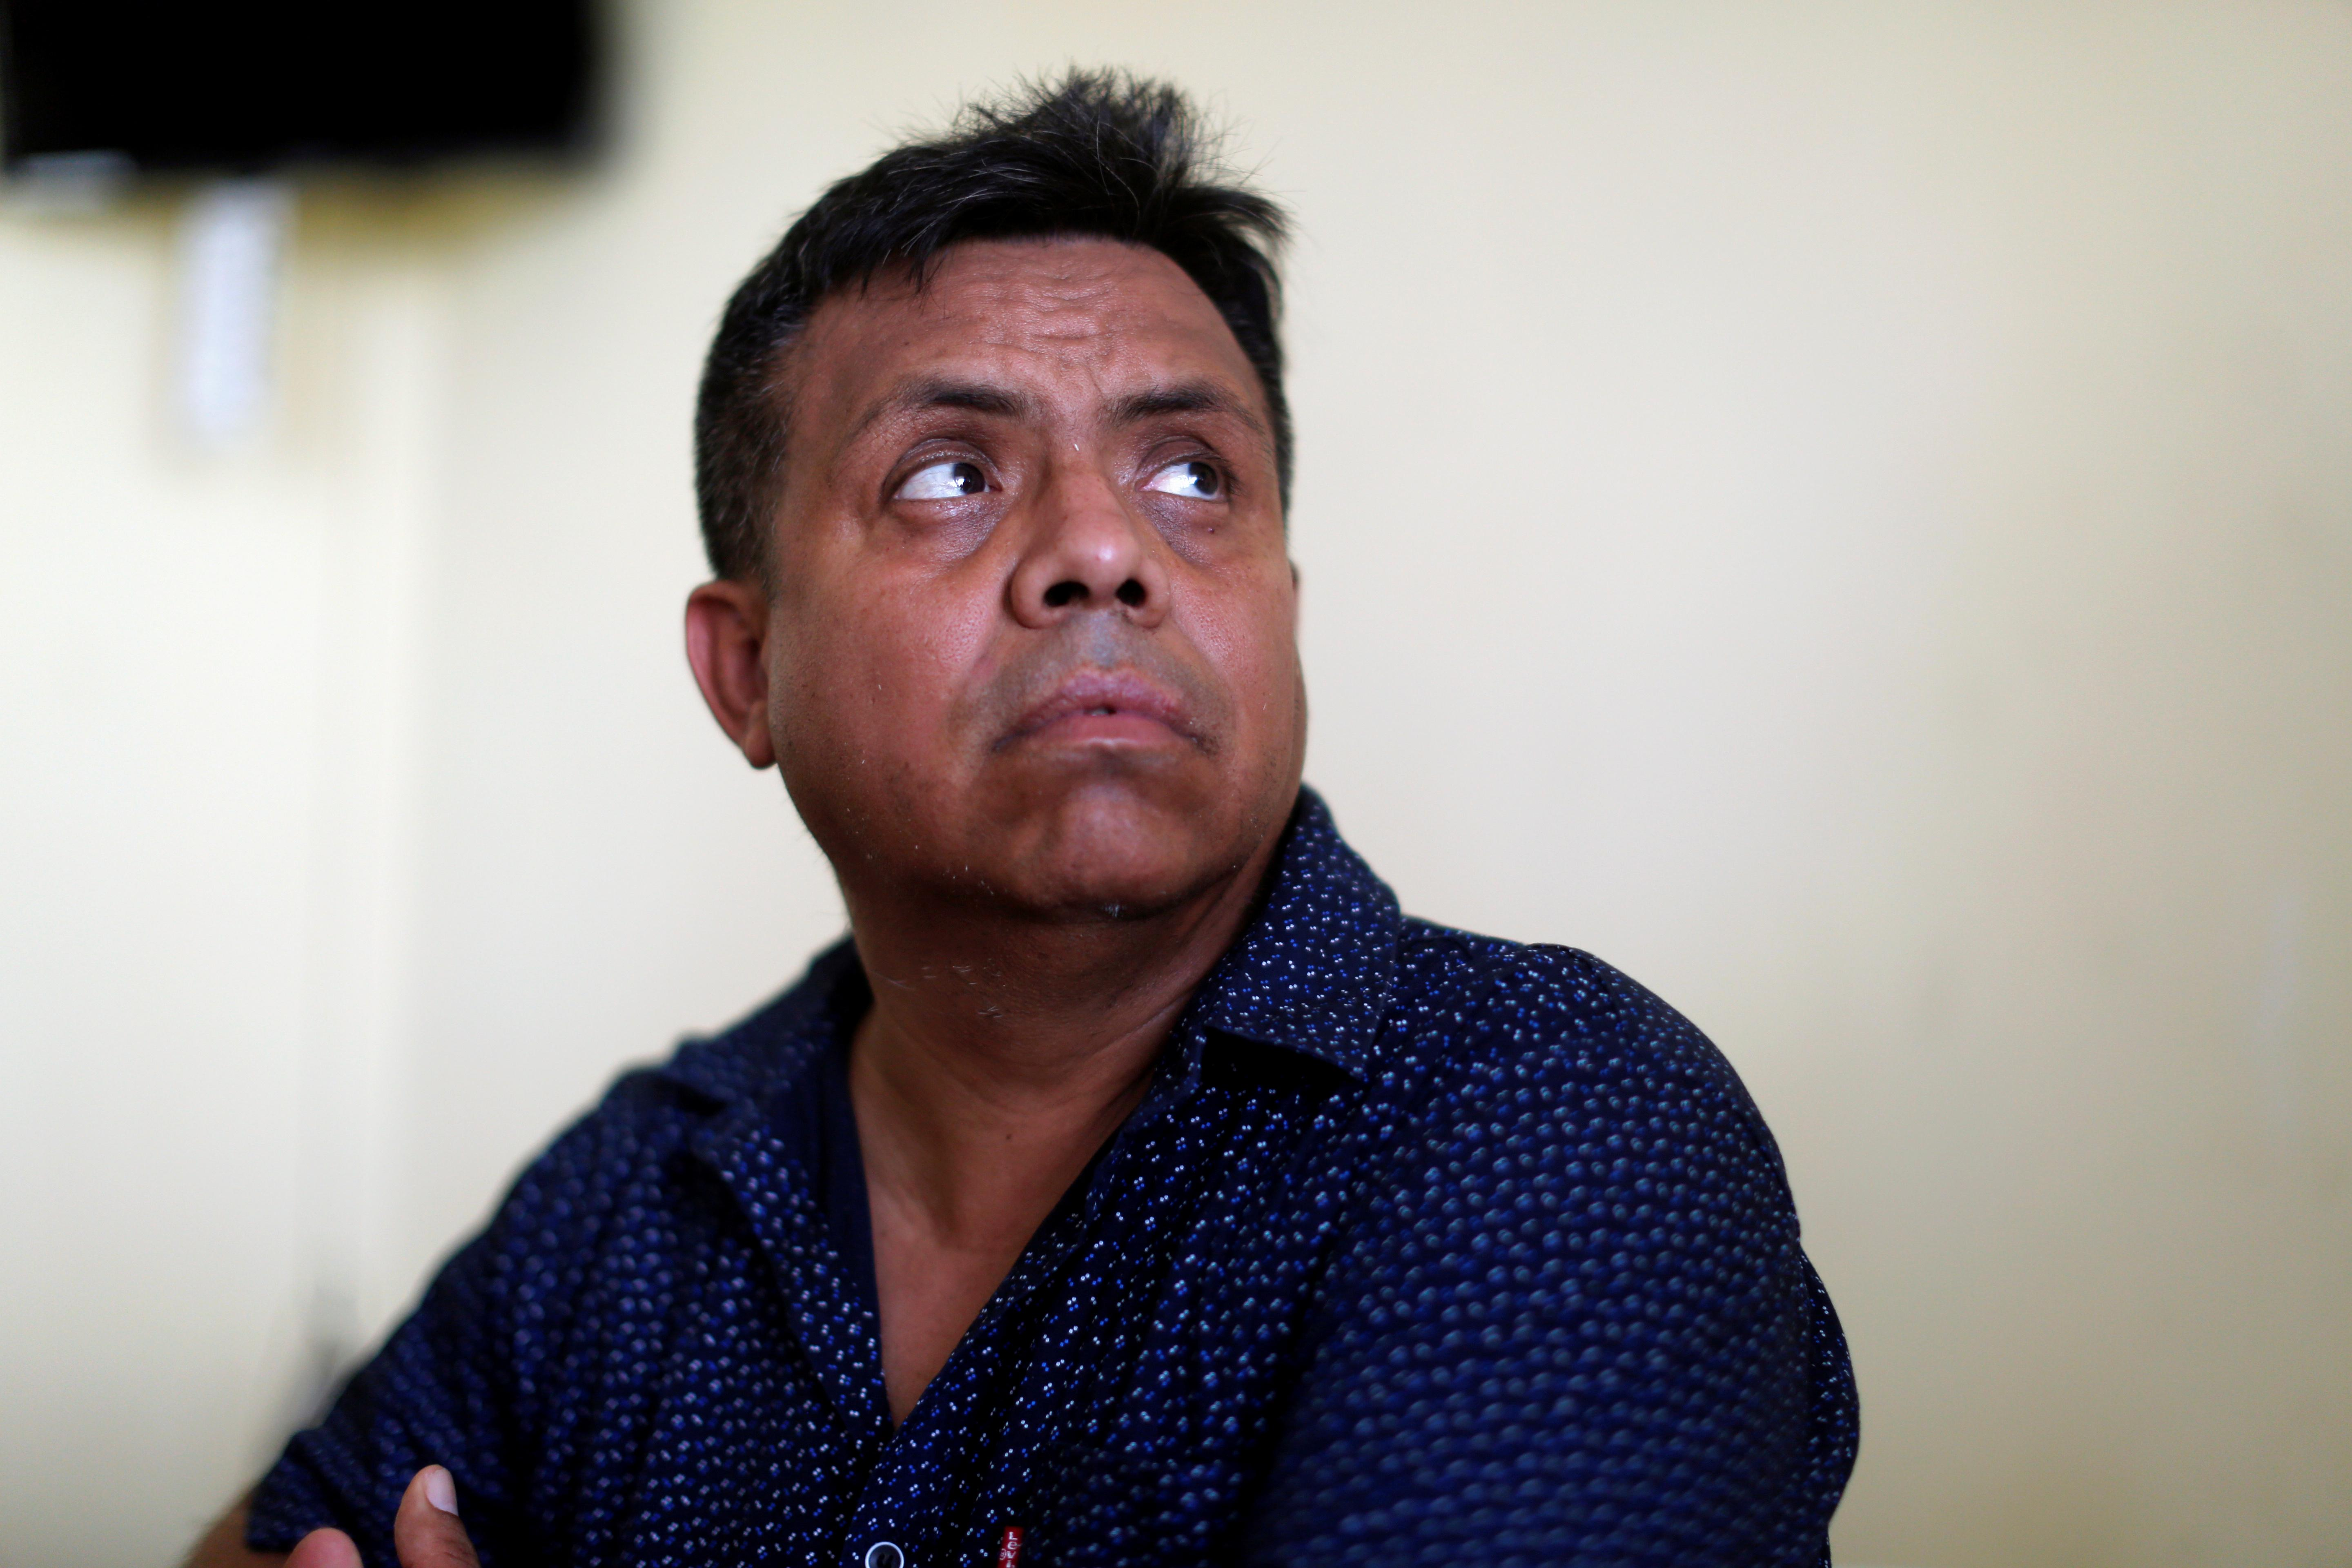 Two prominent migrant rights defenders freed in Mexico